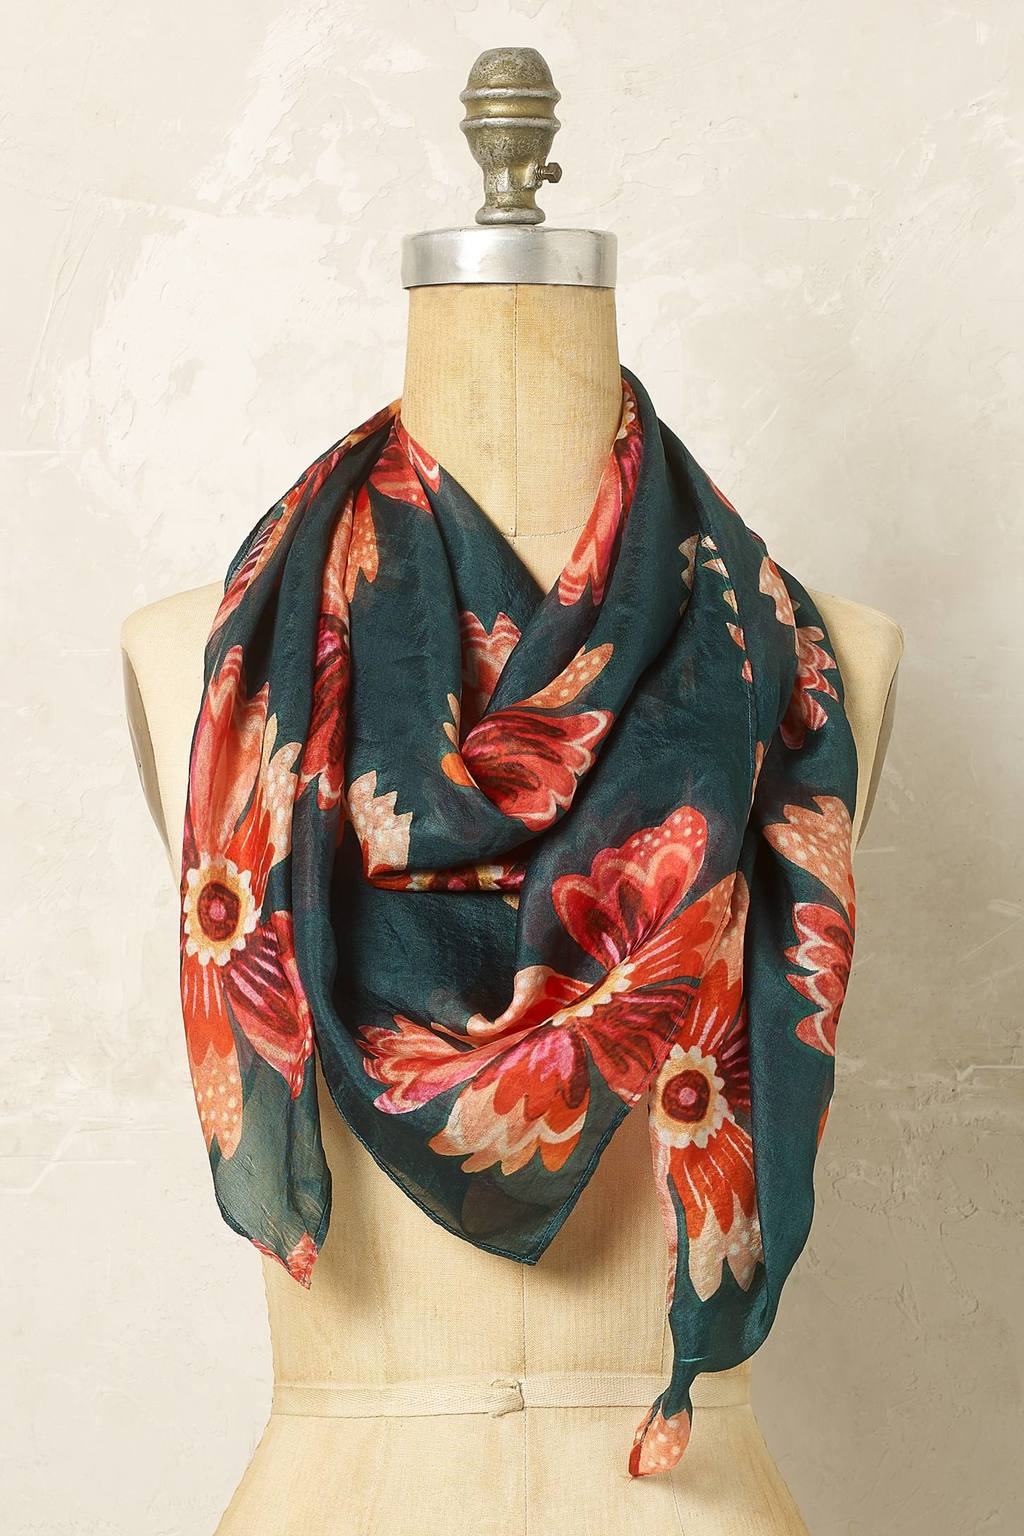 Dahlia Silk Floral Scarf - predominant colour: dark green; secondary colour: coral; occasions: casual; type of pattern: standard; style: regular; size: standard; material: fabric; pattern: florals; multicoloured: multicoloured; season: a/w 2016